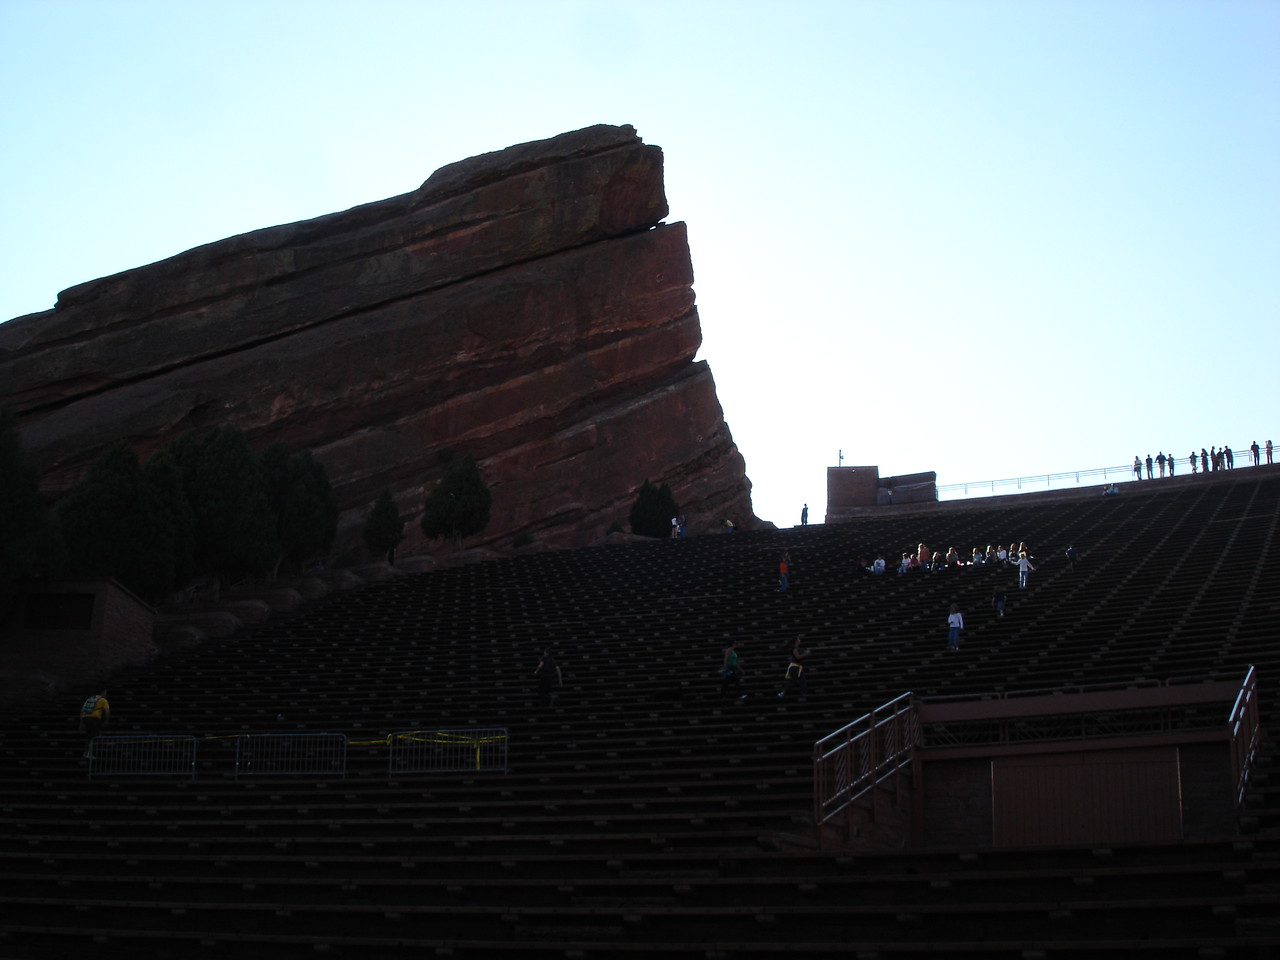 View from the stage to the left.